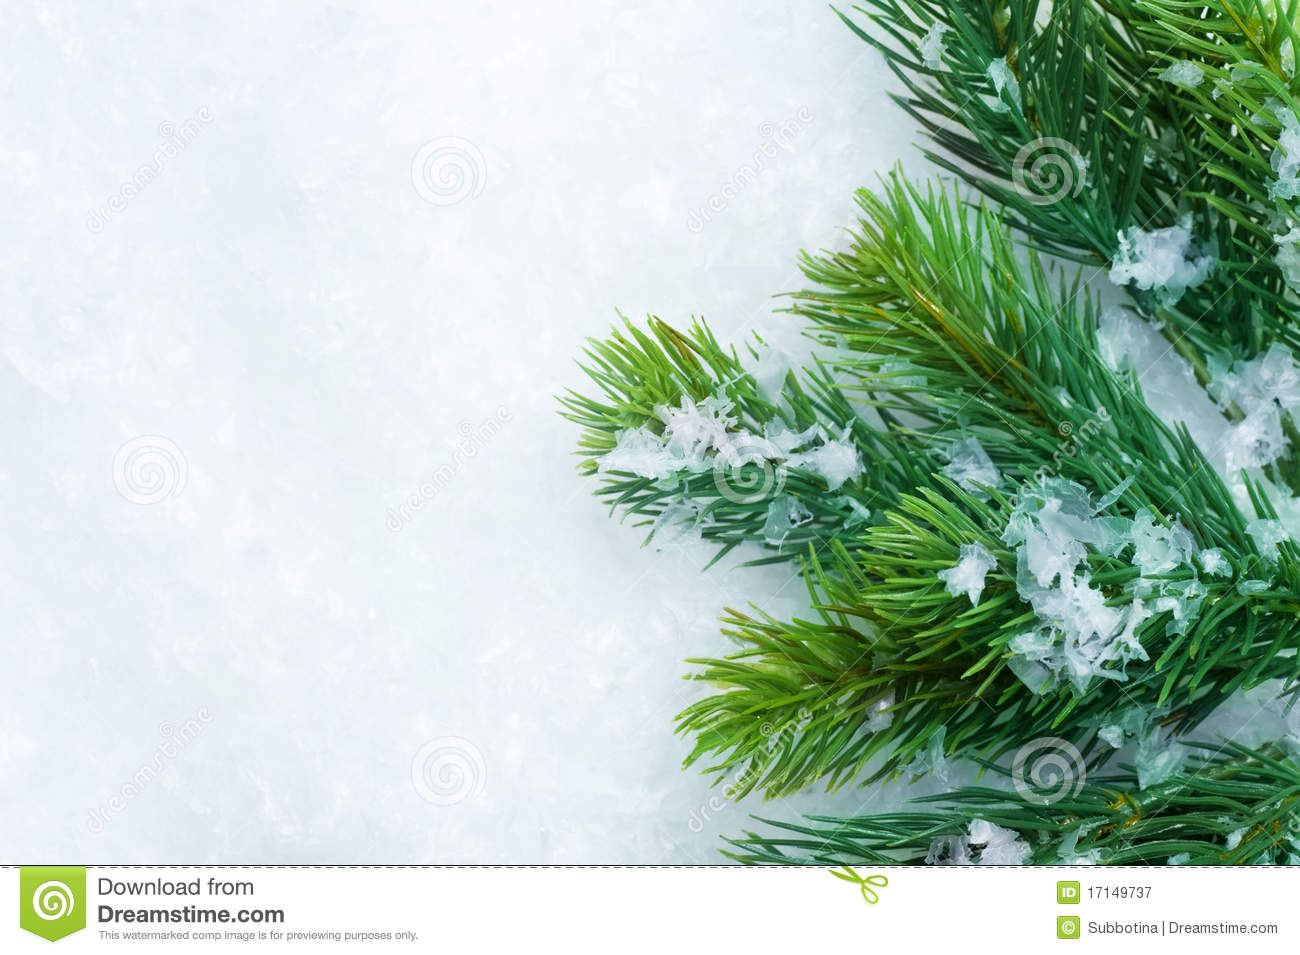 More similar stock images of ` Christmas Tree border `